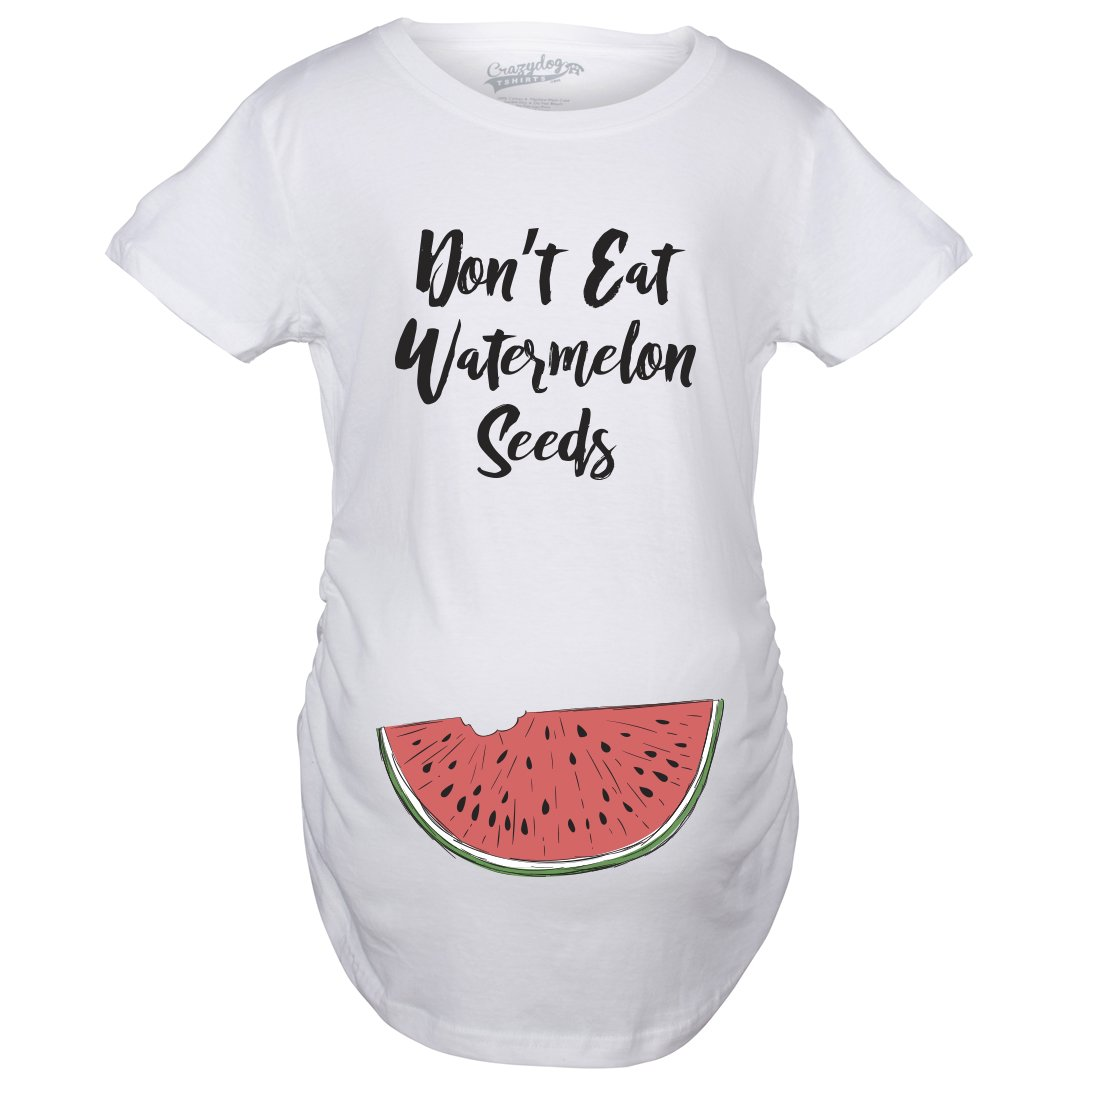 Crazy Dog T-Shirts Maternity Don't Eat Watermelon Seeds T Shirt Funny Pregnancy Reveal Pregnant Tee